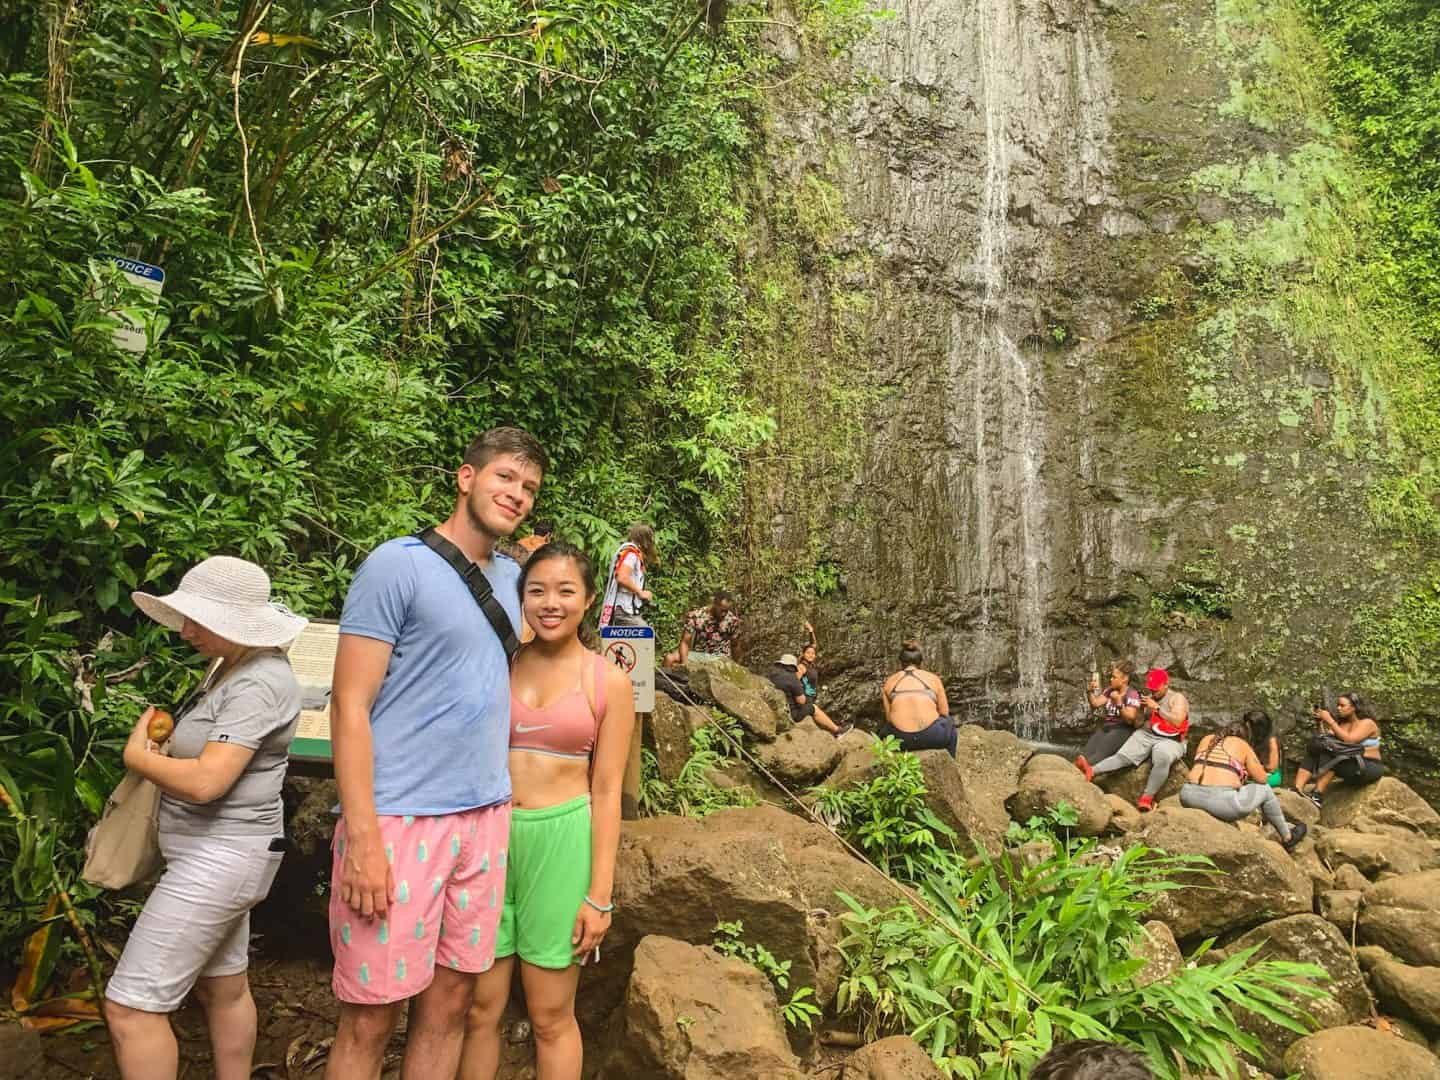 The Mauniwili Falls hike is one of the best hikes to add to your Oahu itinerary